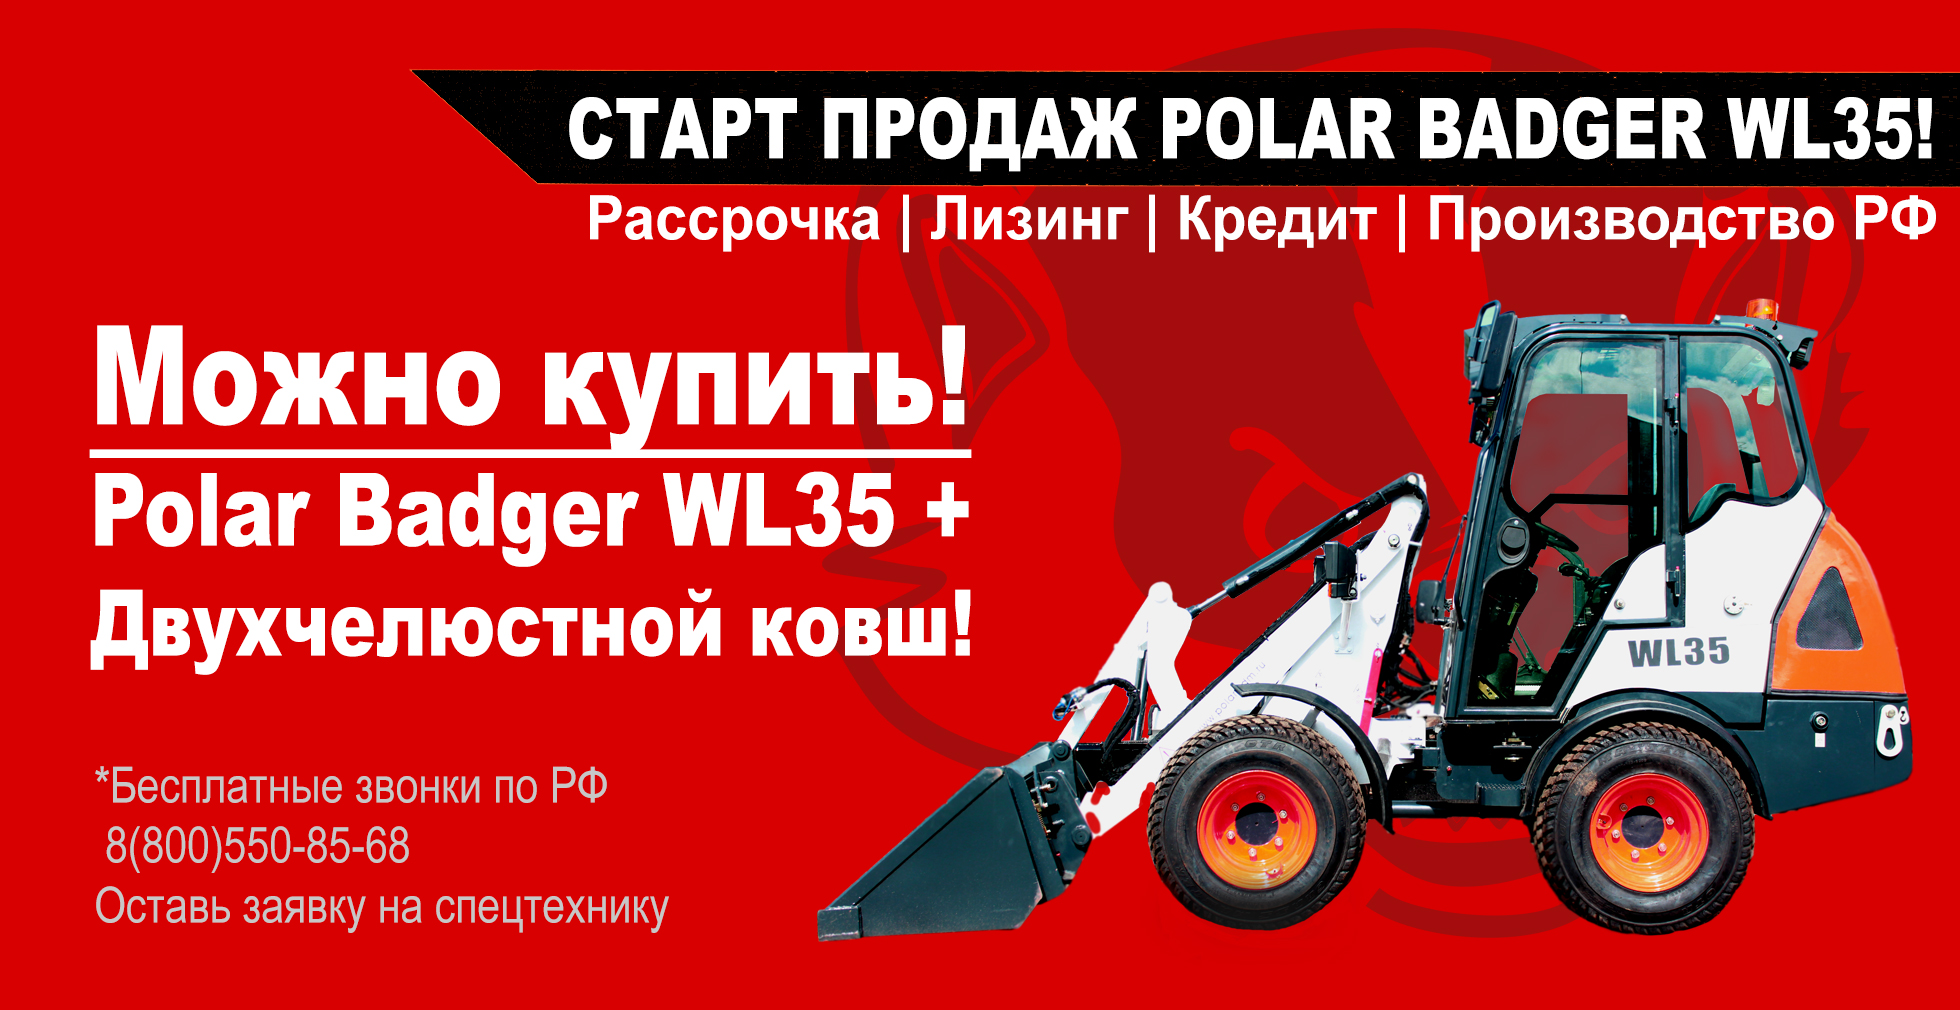 Шаблон-слайдера-старт-продаж-на-Polar-Badger